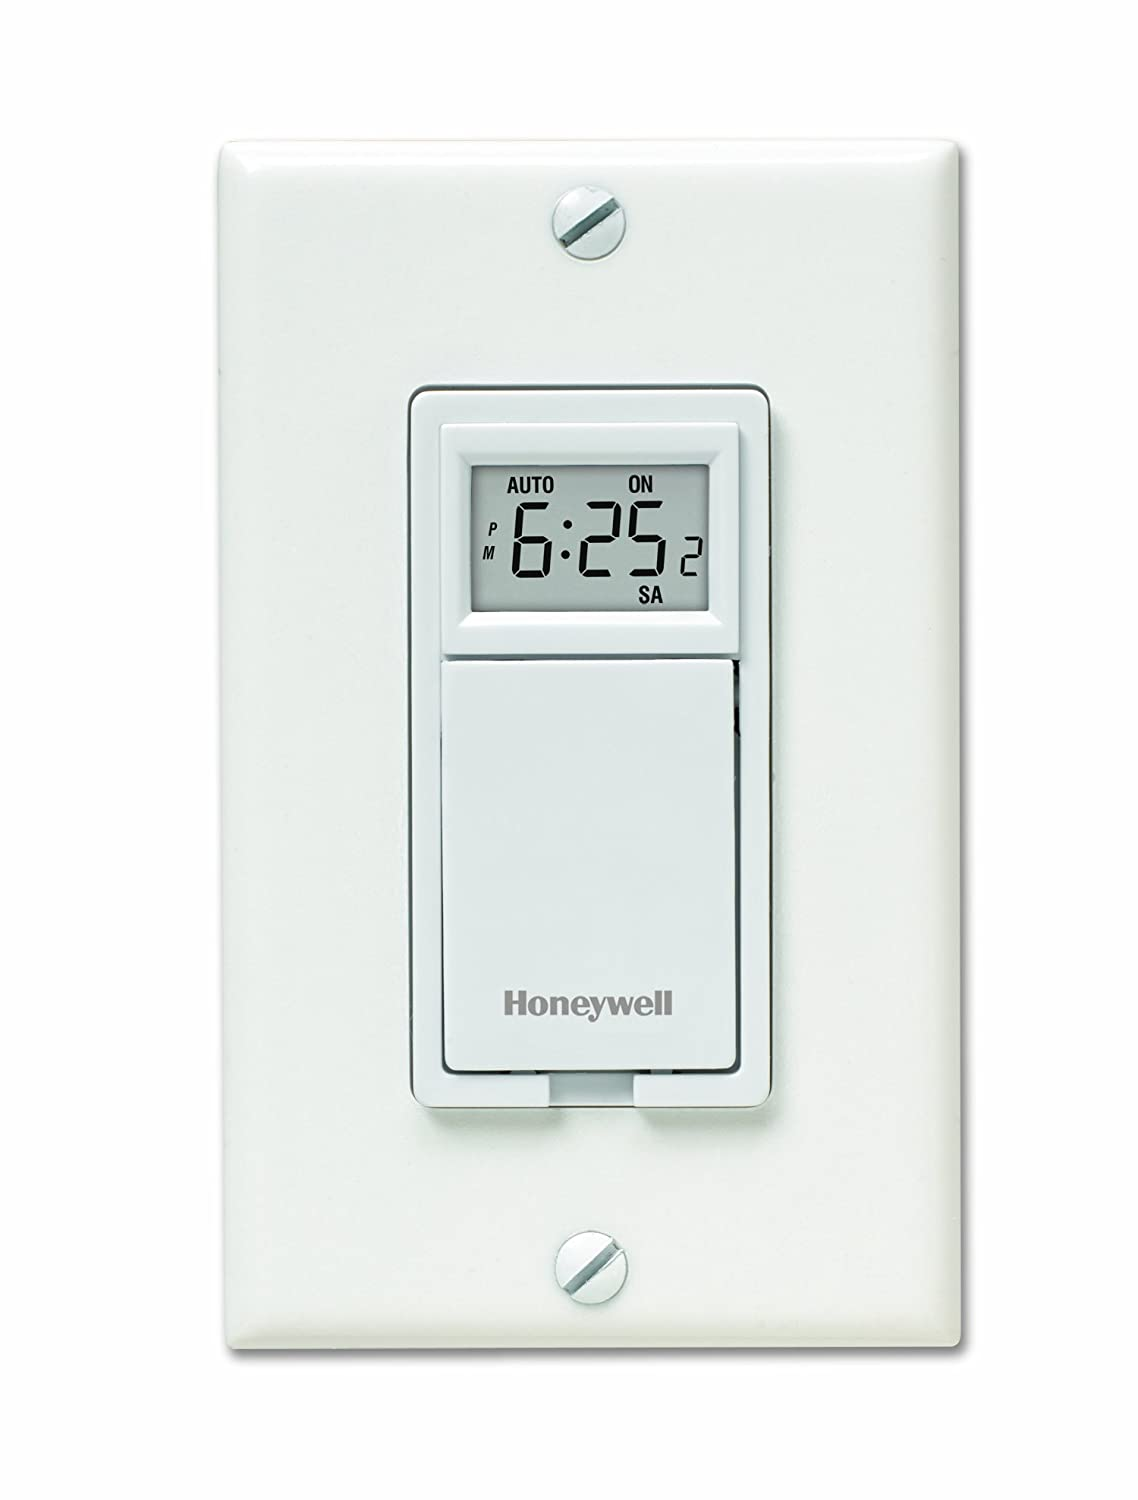 Honeywell RPLS730B1000/U 7-Day Programmable Light Switch Timer ...